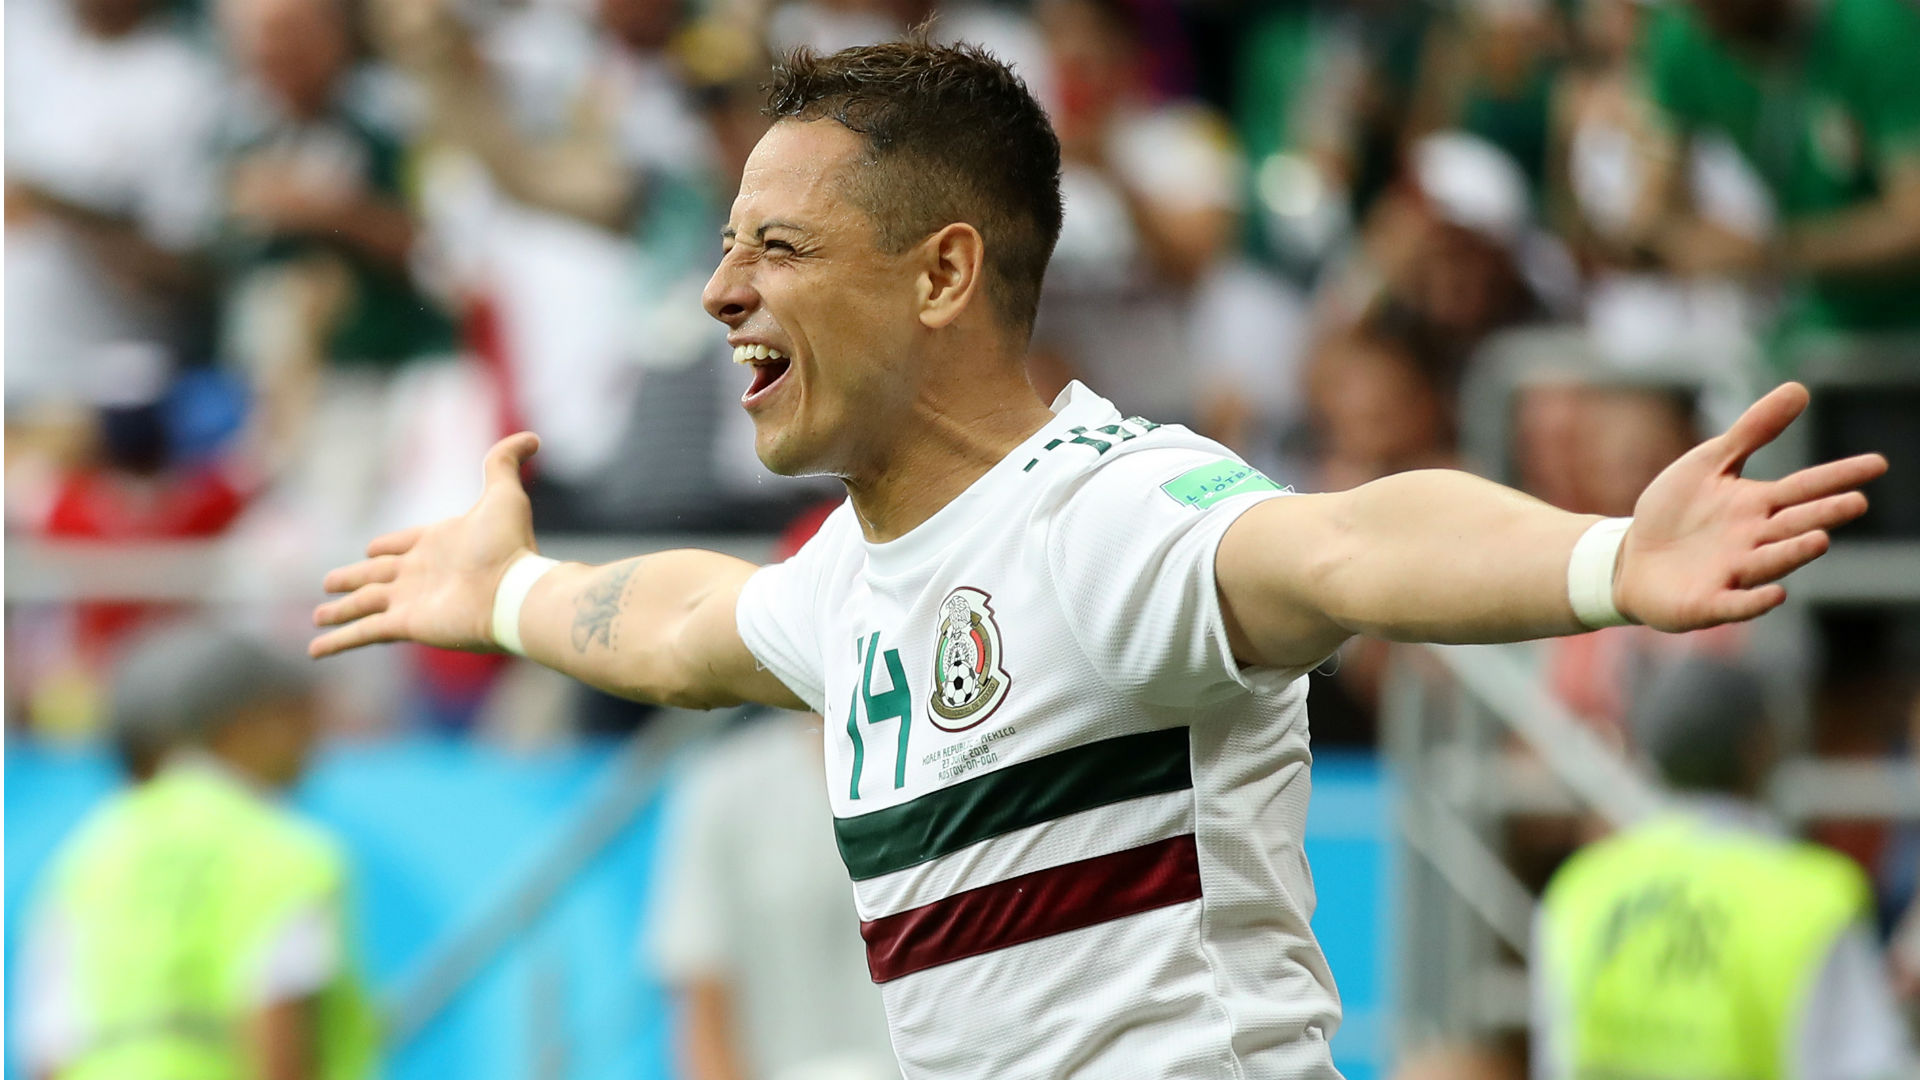 Mexico dominates in match against South Korea, wins 2-1